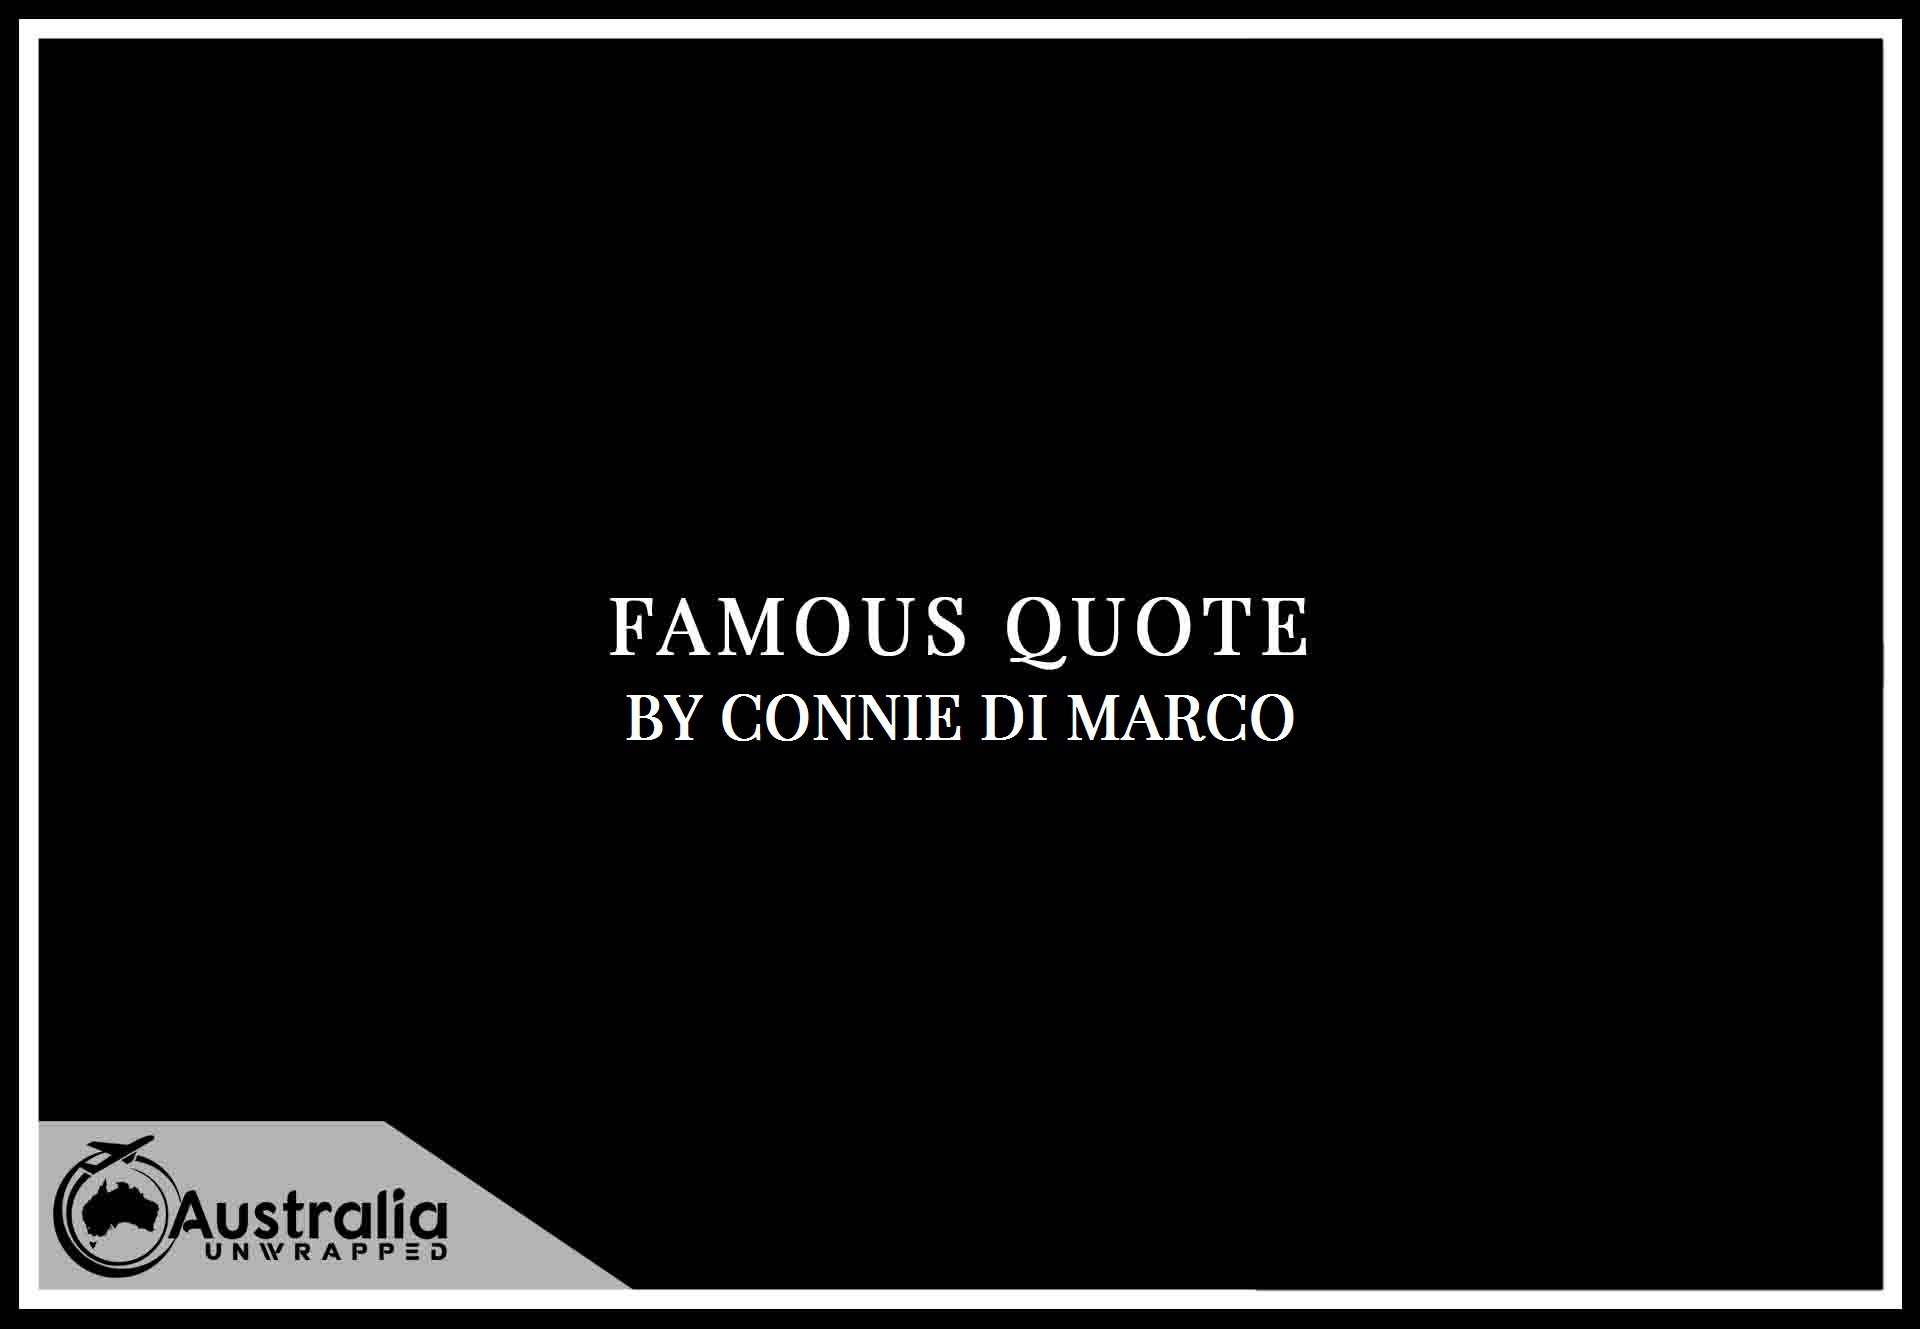 Connie Di Marco's Top 1 Popular and Famous Quotes